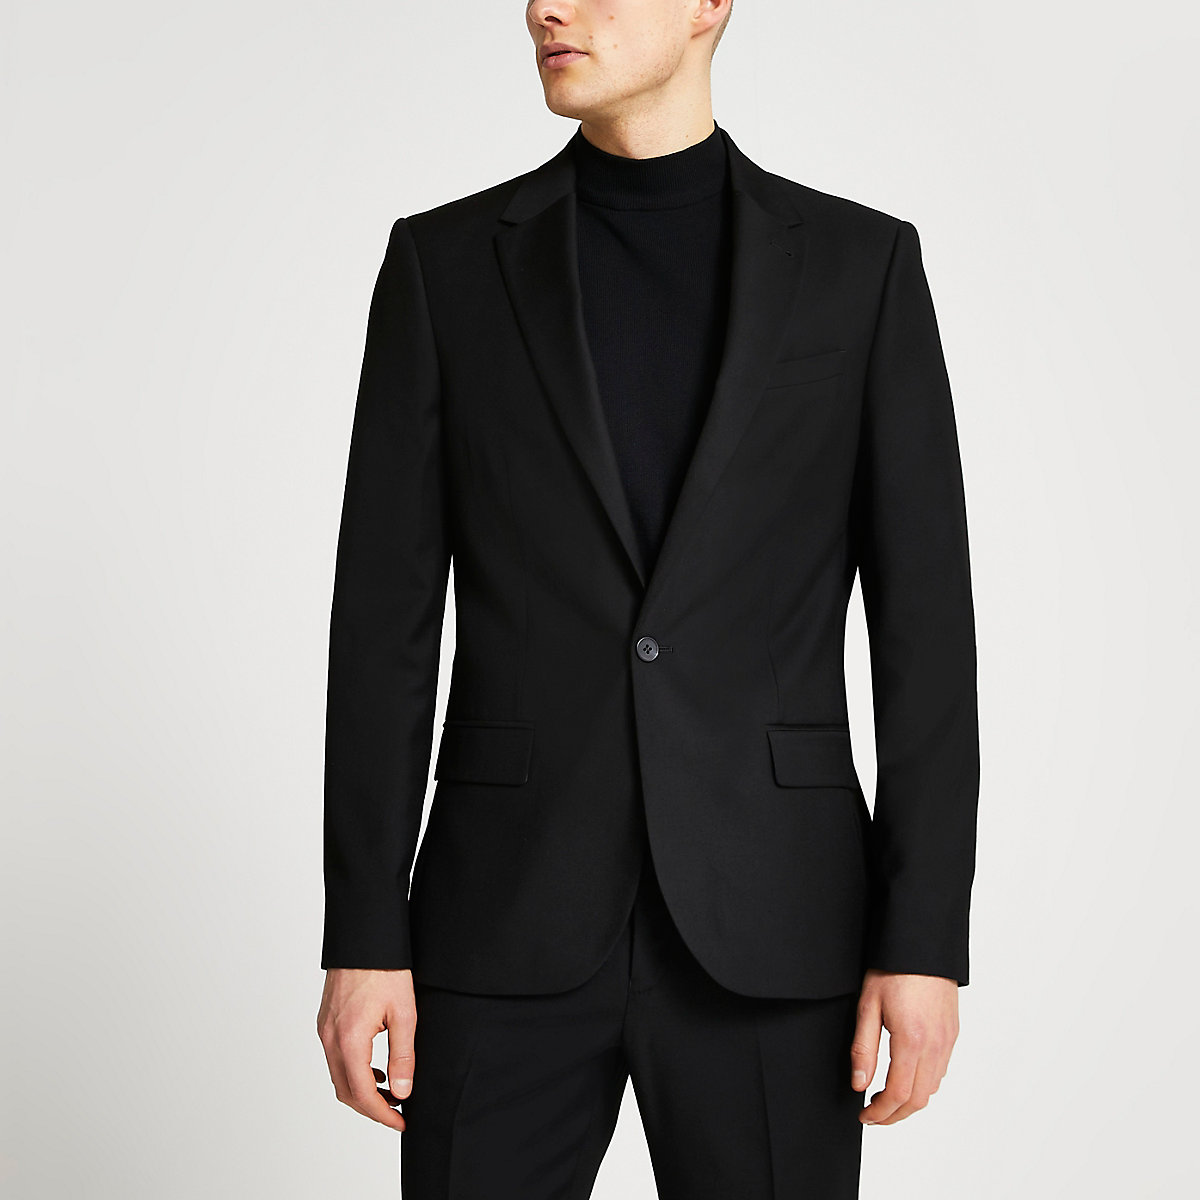 Black skinny fit suit jacket